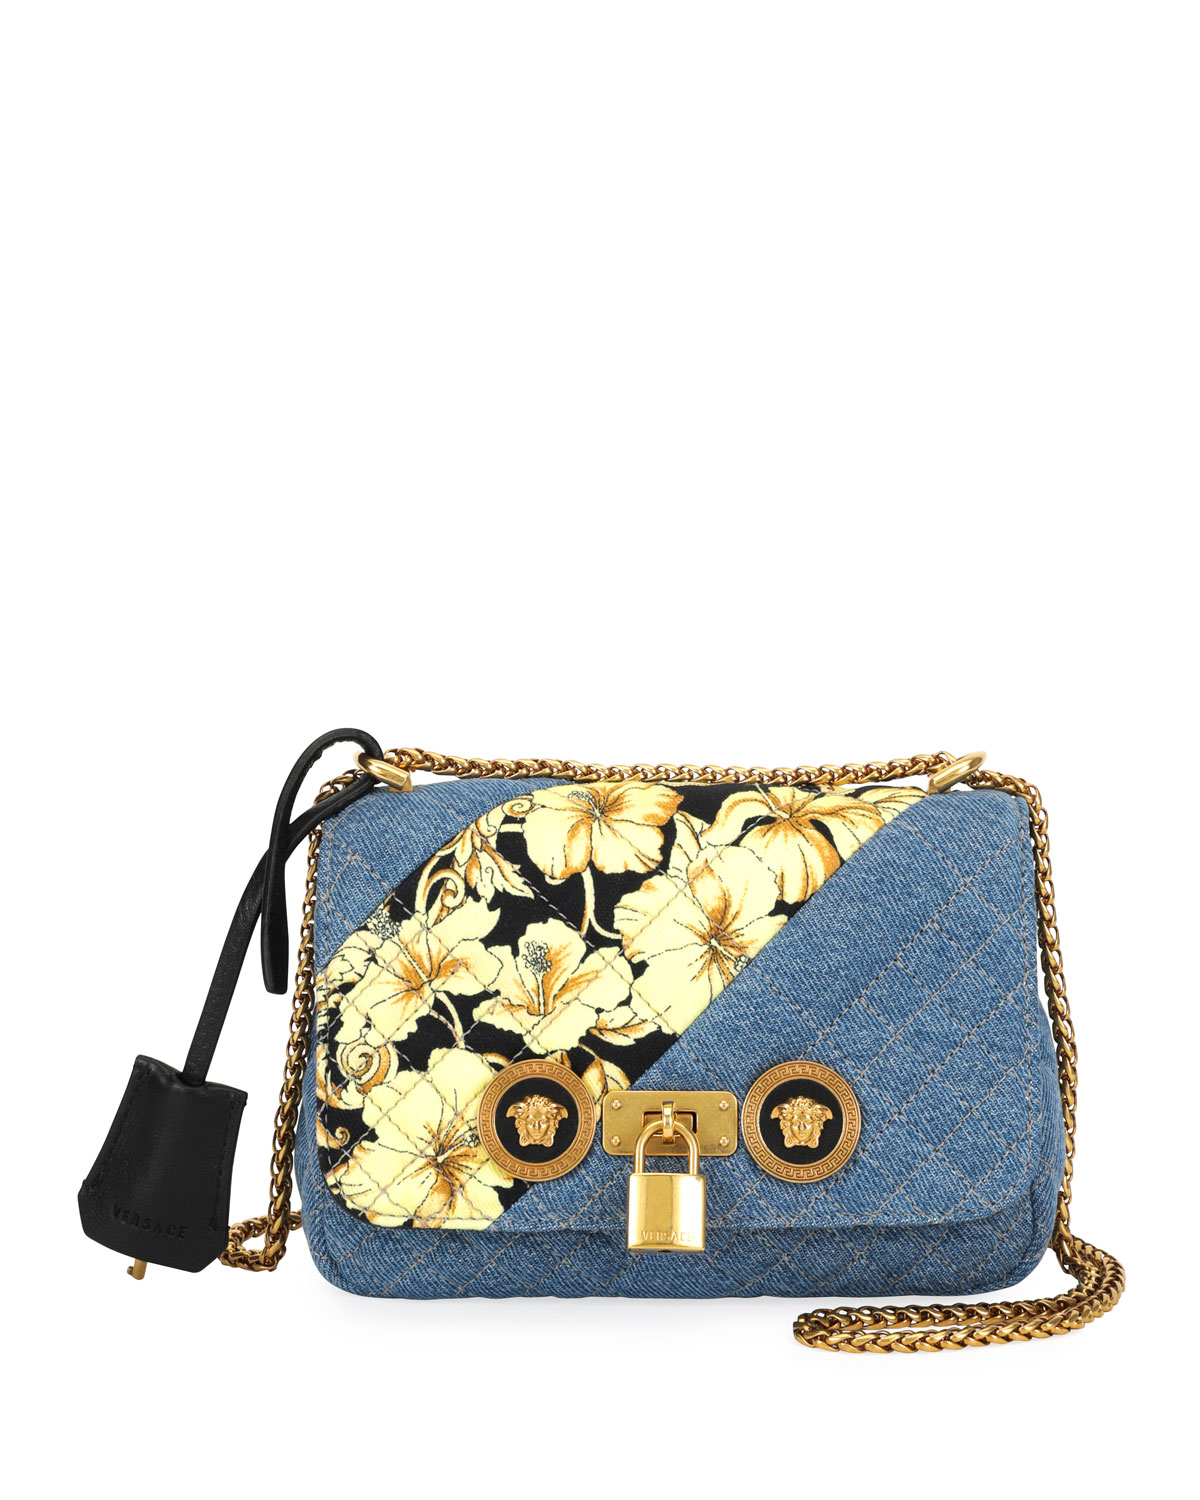 2cab9f6193f7 Versace Icon Small Denim Crossbody Bag with Barocco Detail